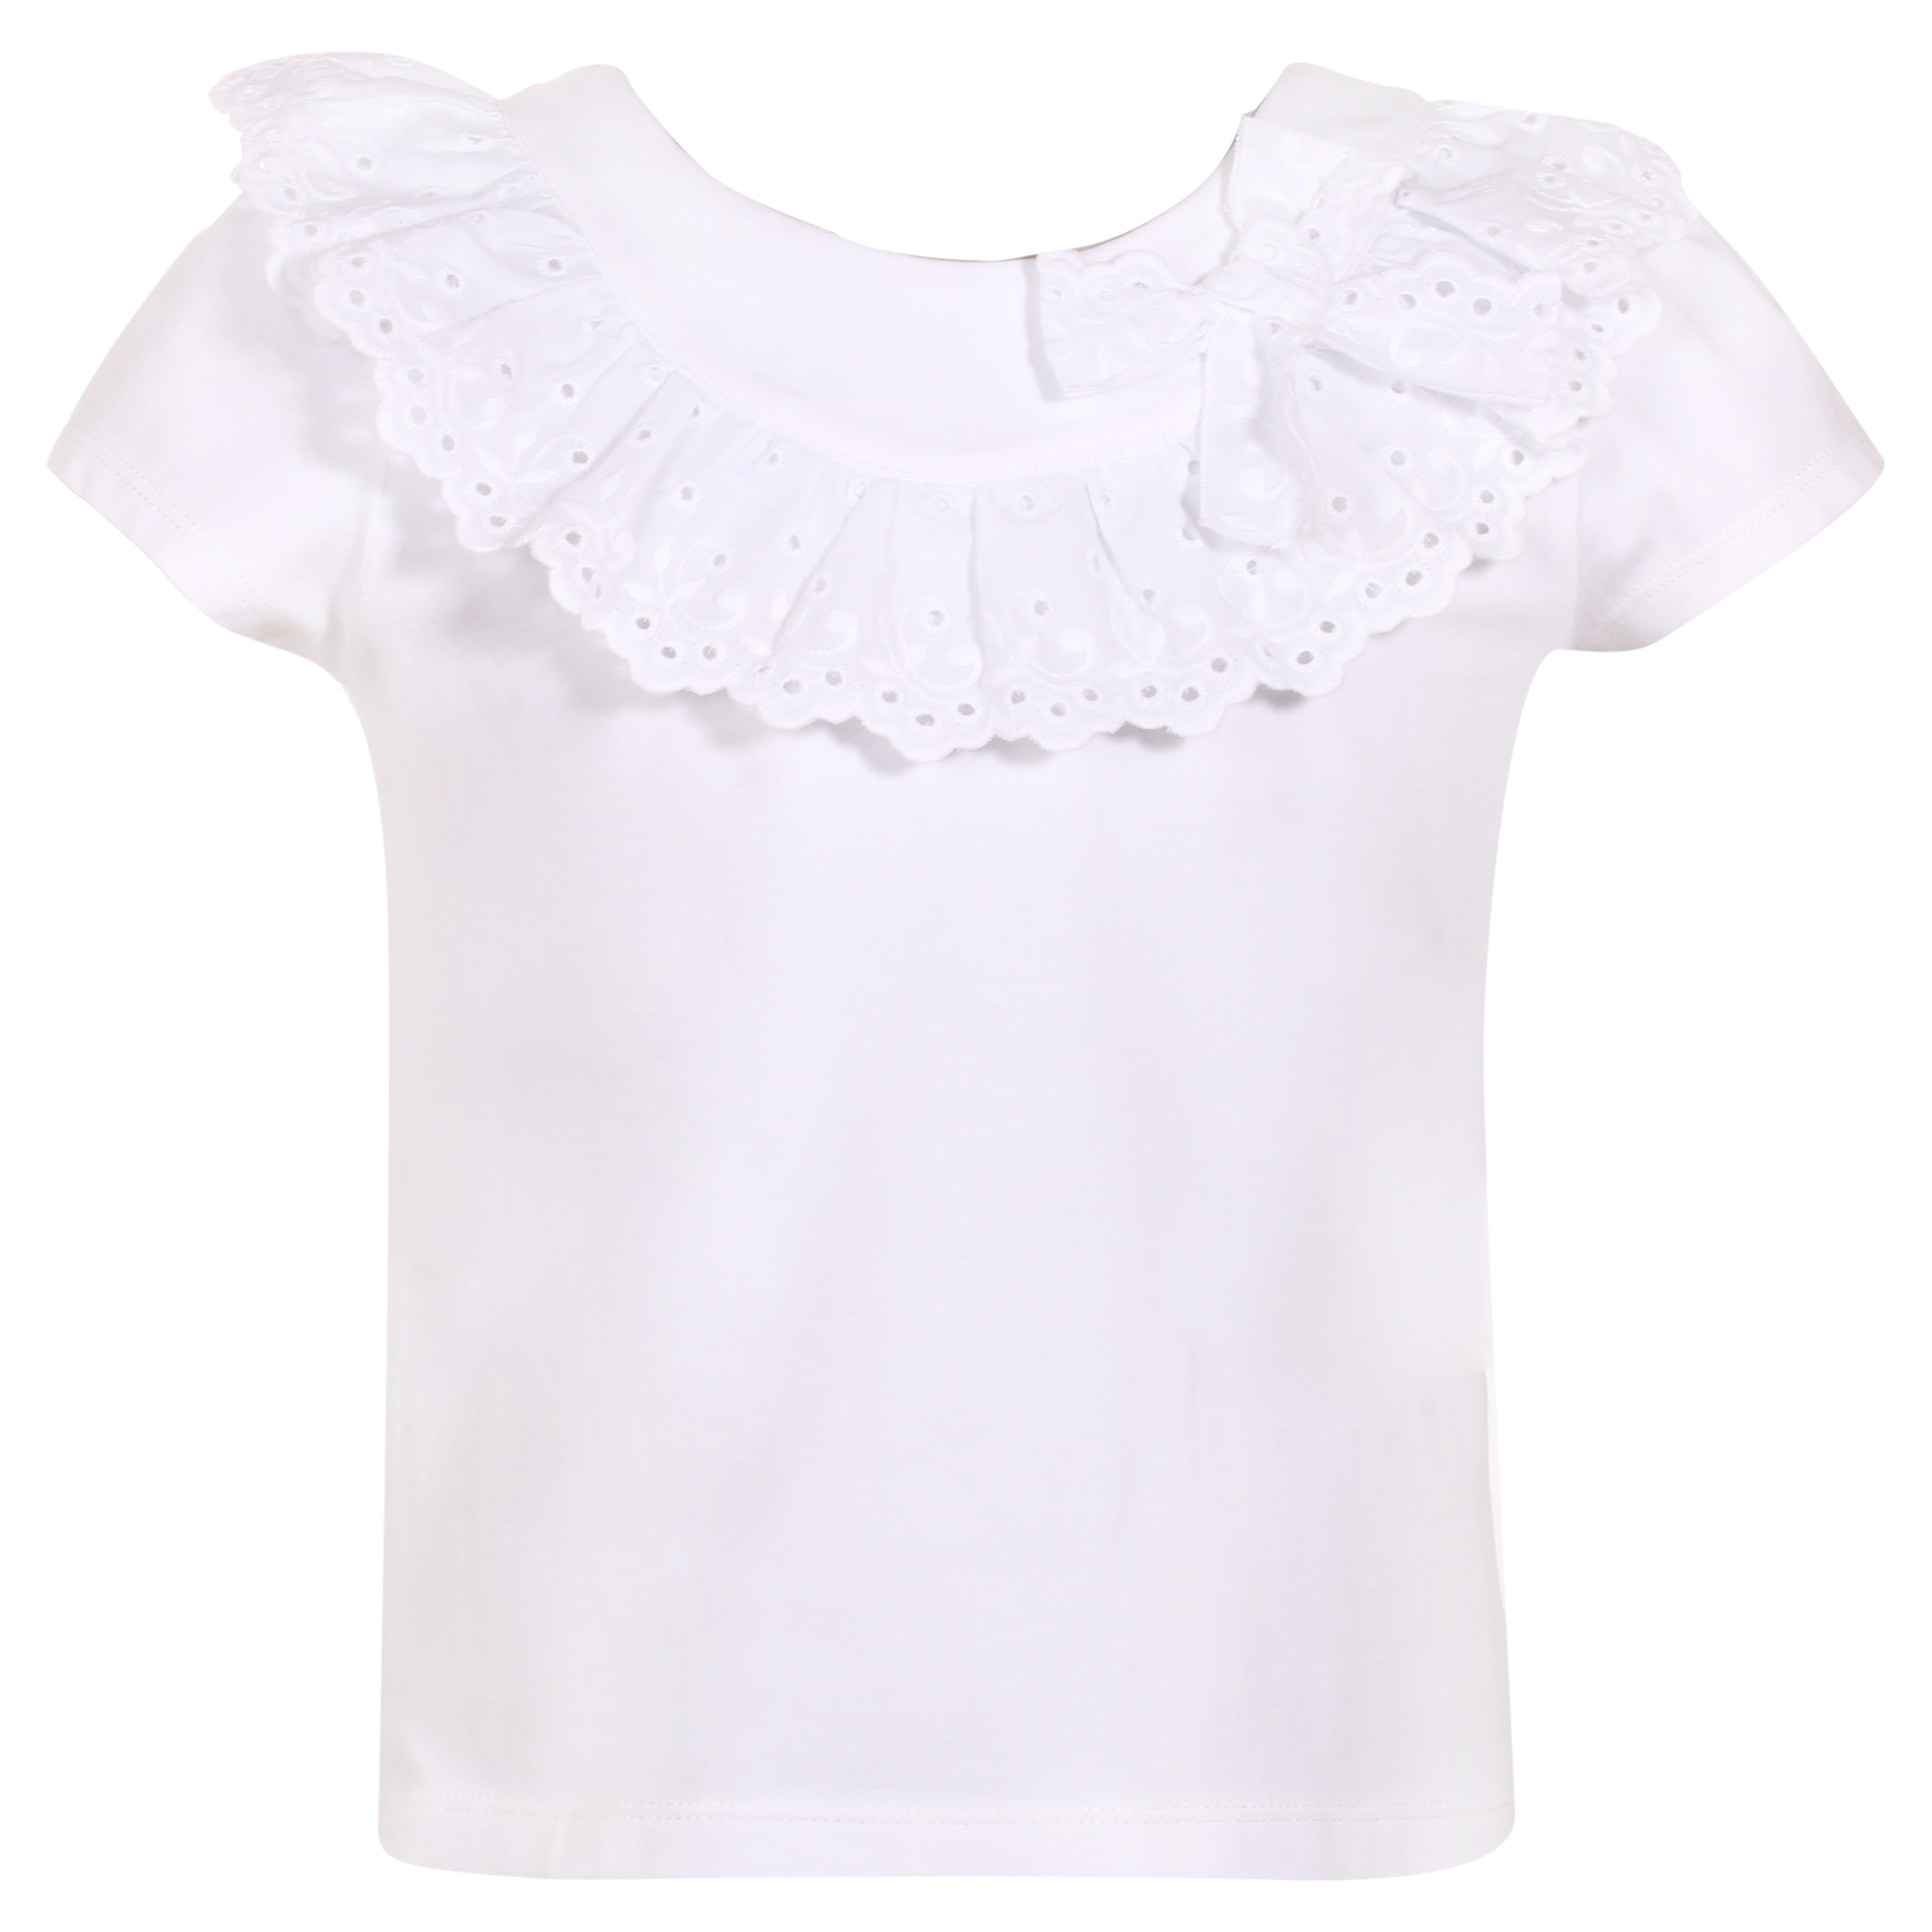 53a854346 PATACHOU GIRLS WHITE JERSEY TOP WITH BRODERIE ANGLAISE REF.: 2833443 -  masielbebe.co.uk